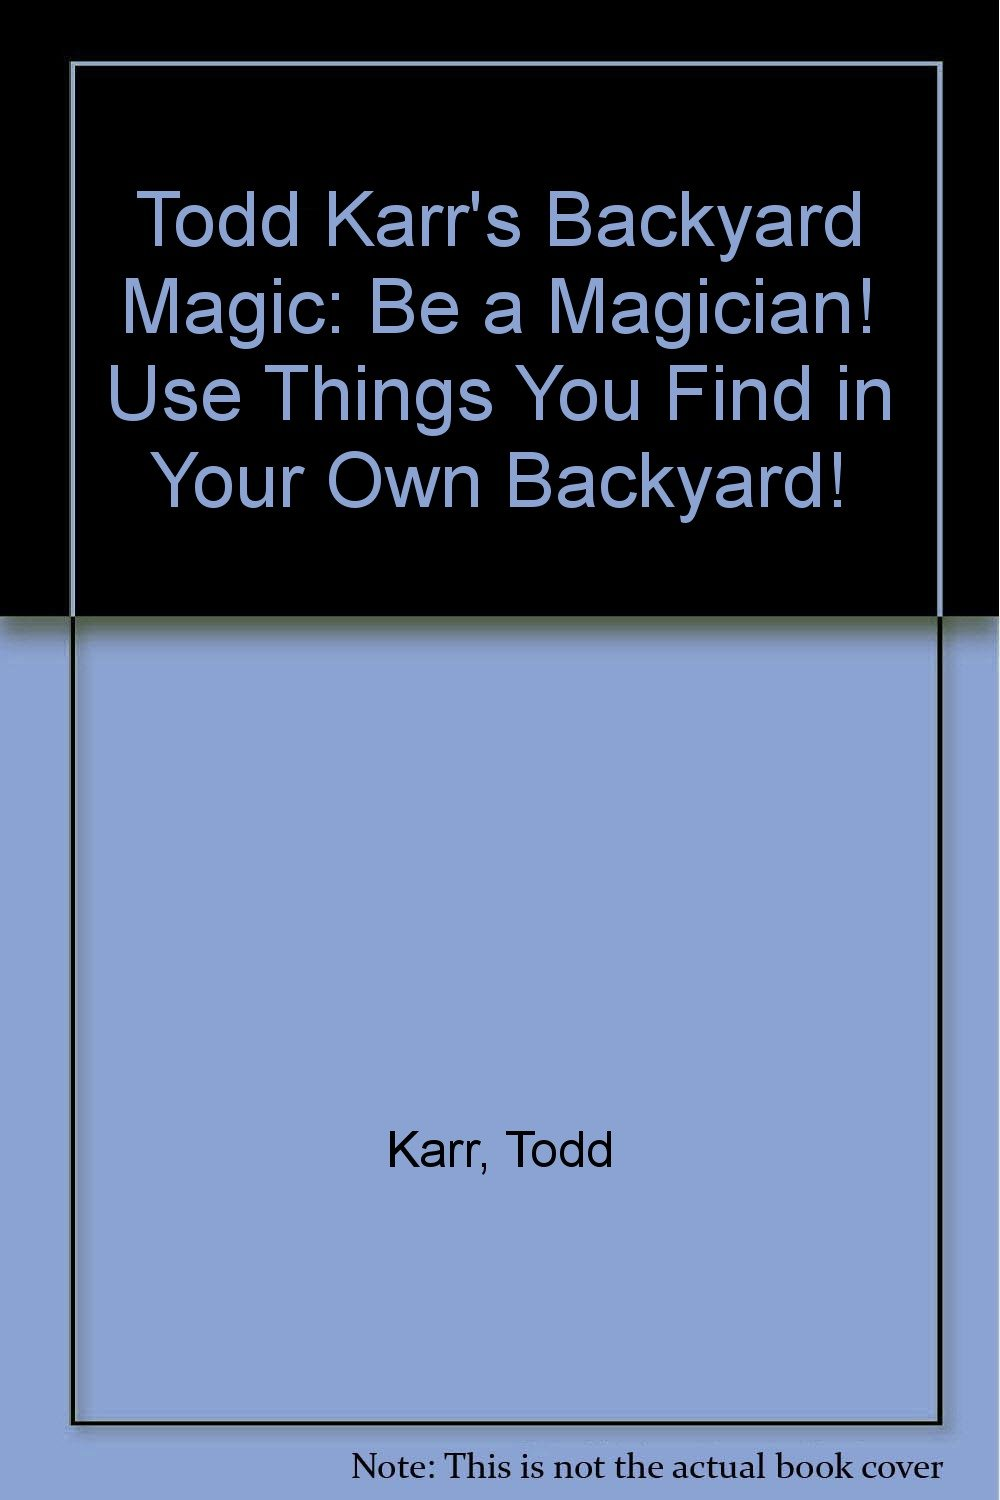 Todd Karr's Backyard Magic: Be a Magician! Use Things You Find in Your Own Backyard!